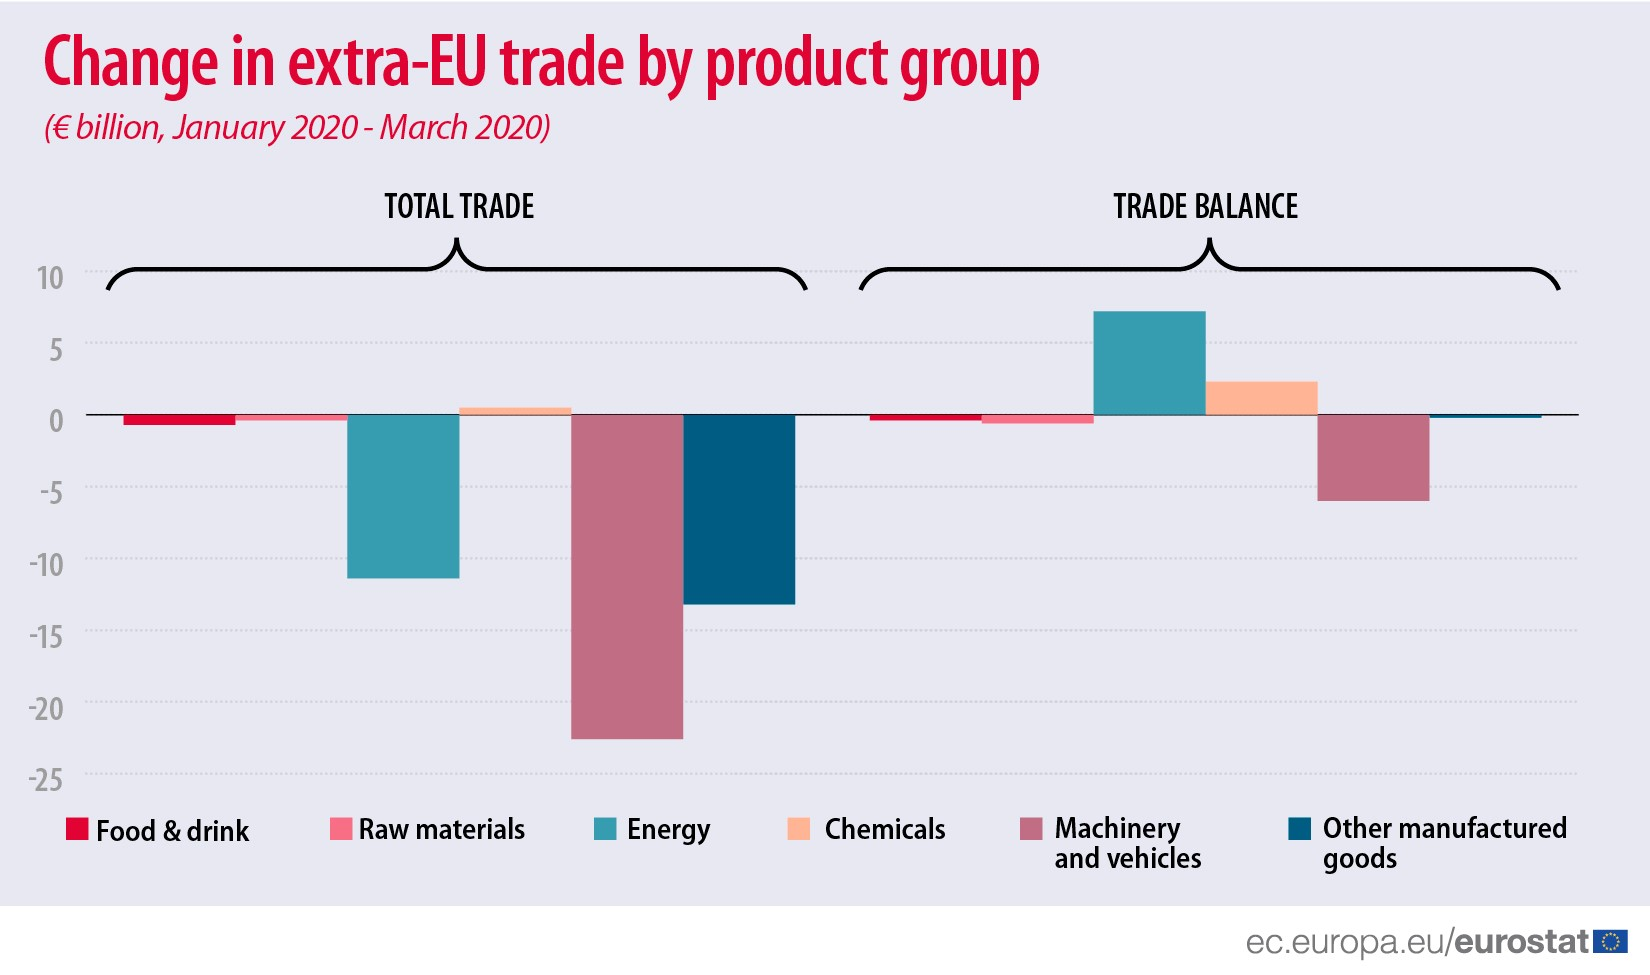 Change in extra-EU trade by product group (eur billion, January 2020 - March 2020)